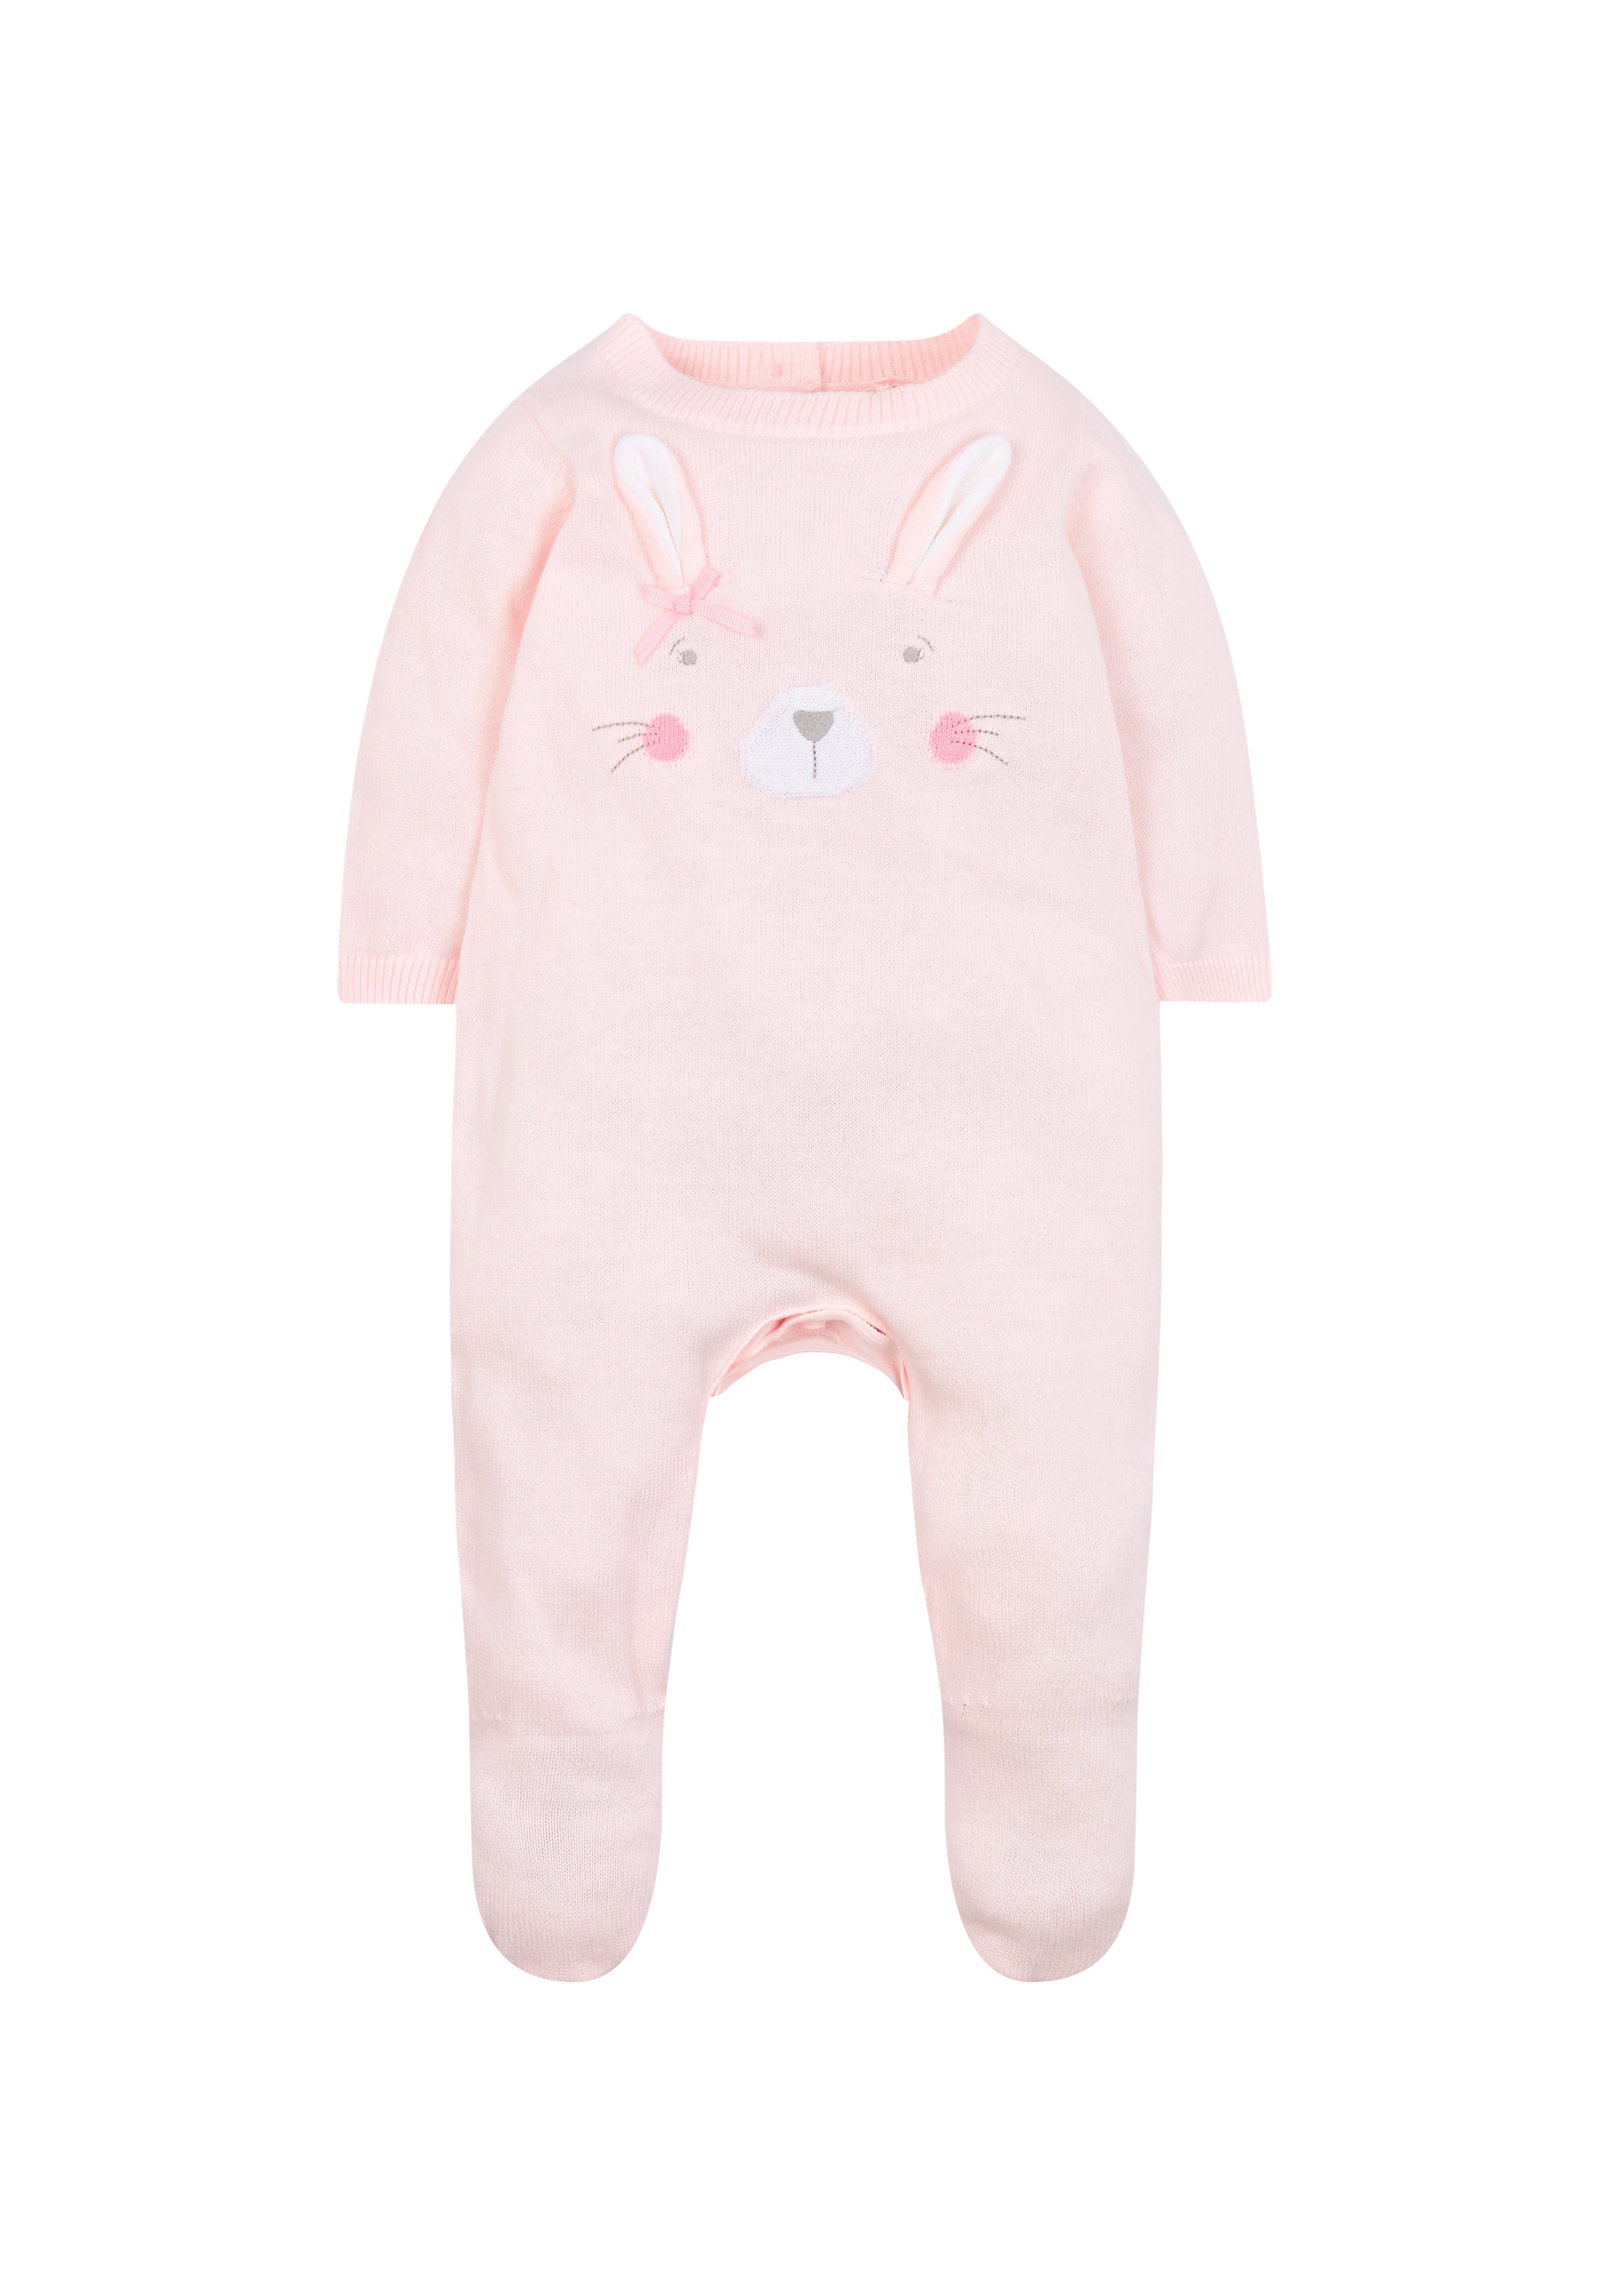 Mothercare | Girls Full Sleeves Romper Bunny 3D Details - Pink